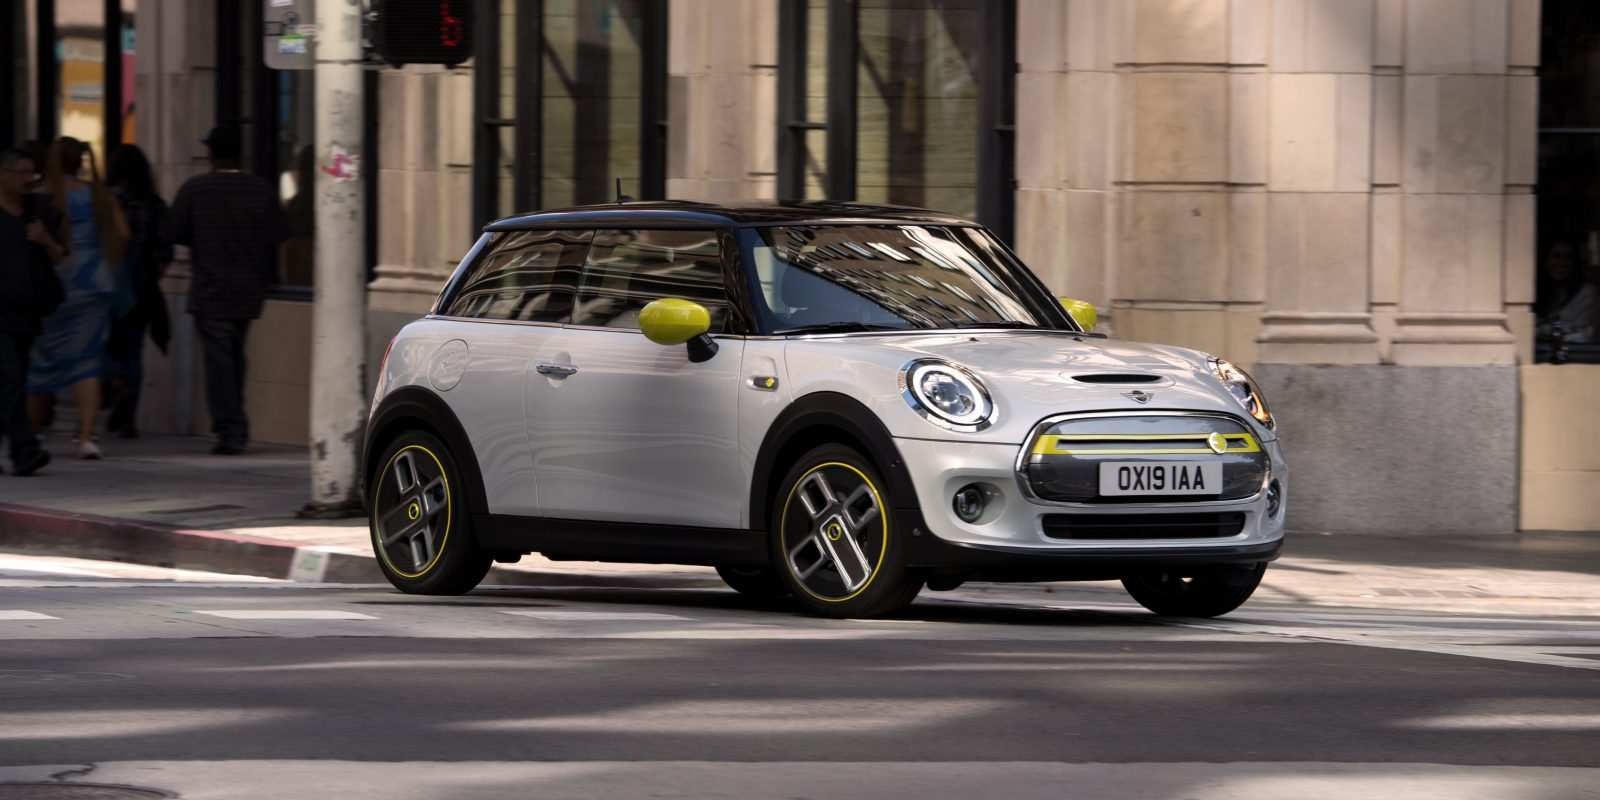 79 A Mini Bev 2019 New Model and Performance